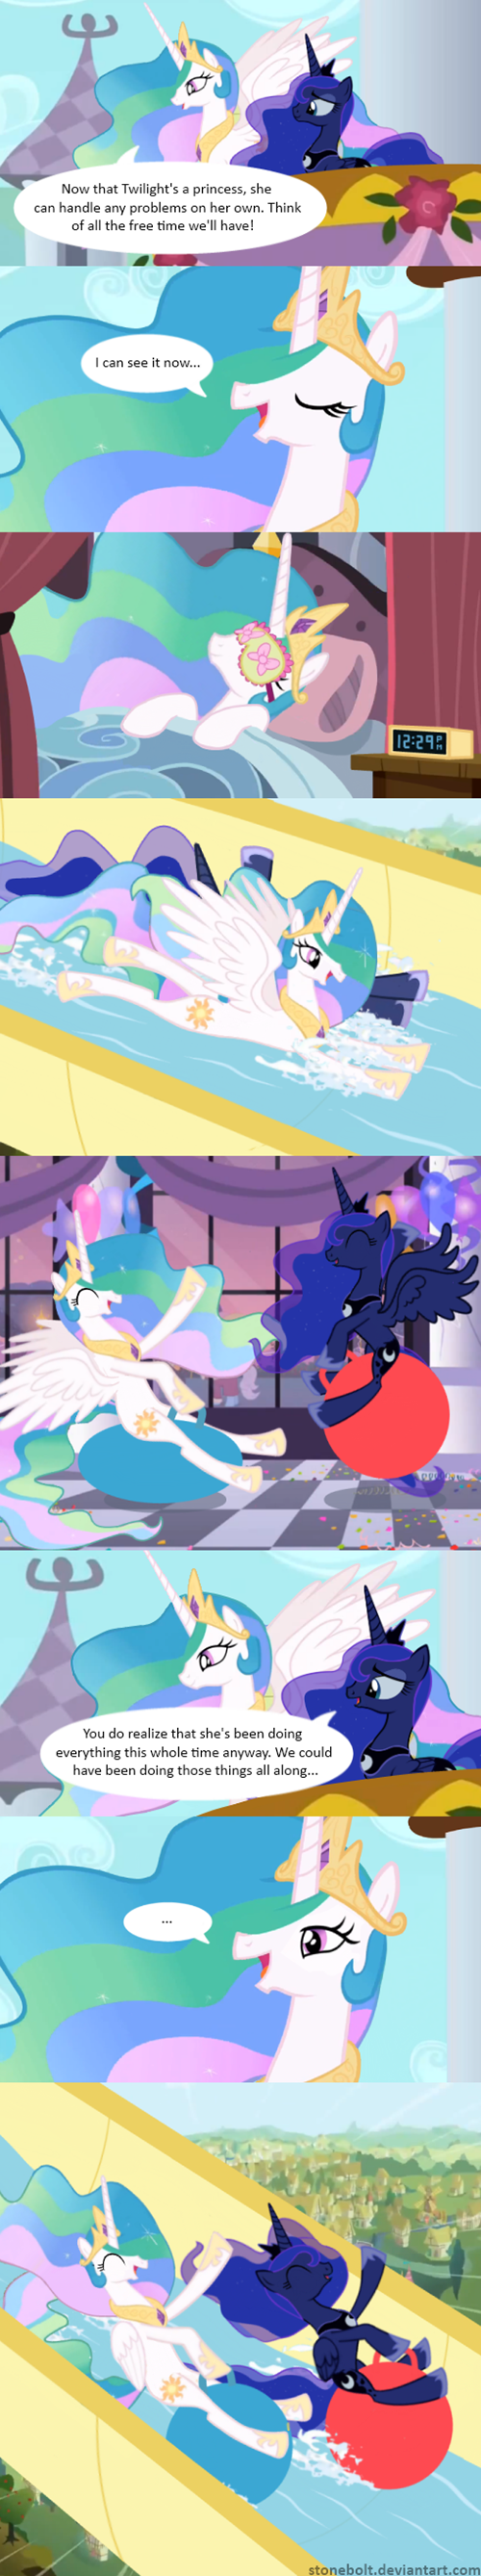 bolt of stone,comics,princess celestia,luna